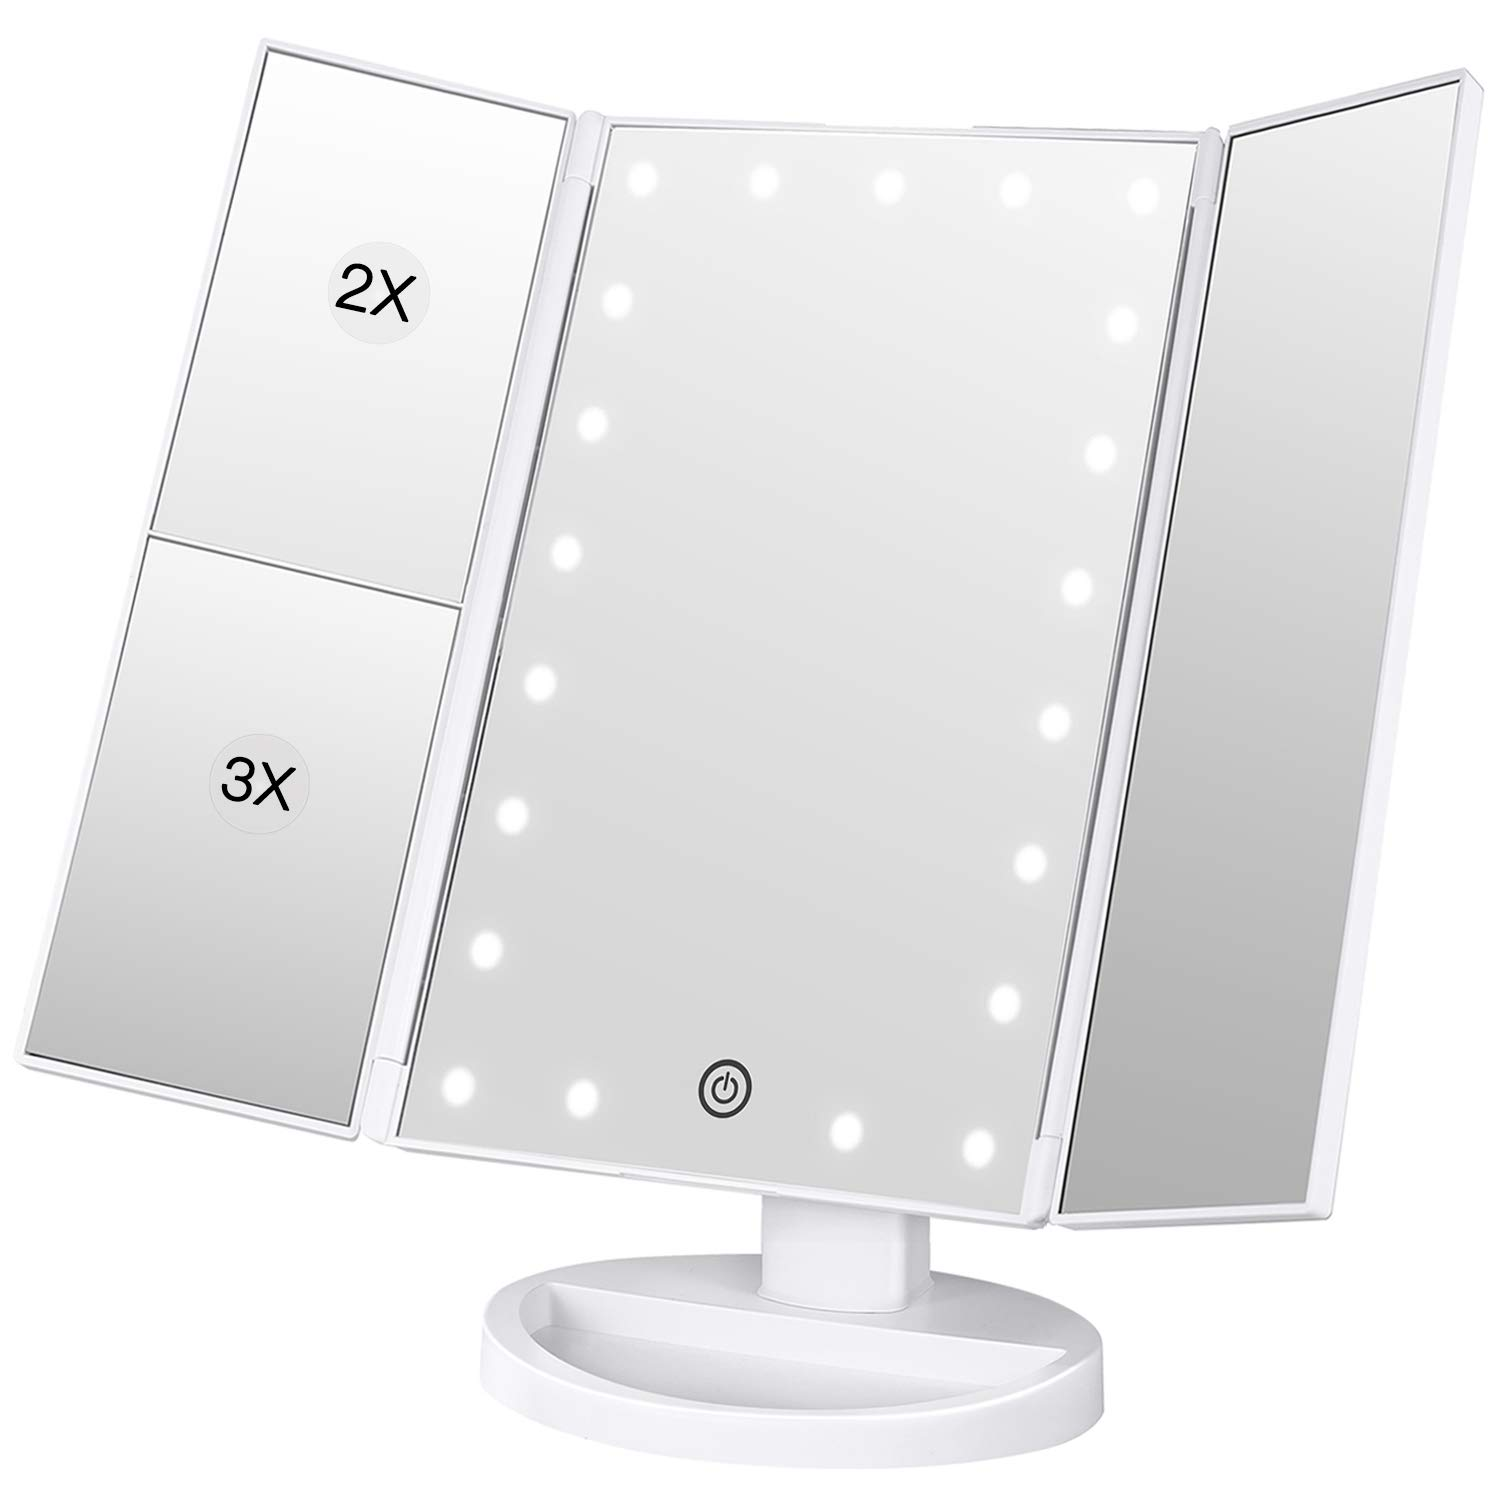 BESTOPE Makeup Vanity Mirror with 3x/2x Magnification,Trifold Mirror with 21 Led Lights,Touch Screen, 180° Adjustable Rotation,Dual Power Supply, Countertop Cosmetic Mirror (Black) BESTOPE CA